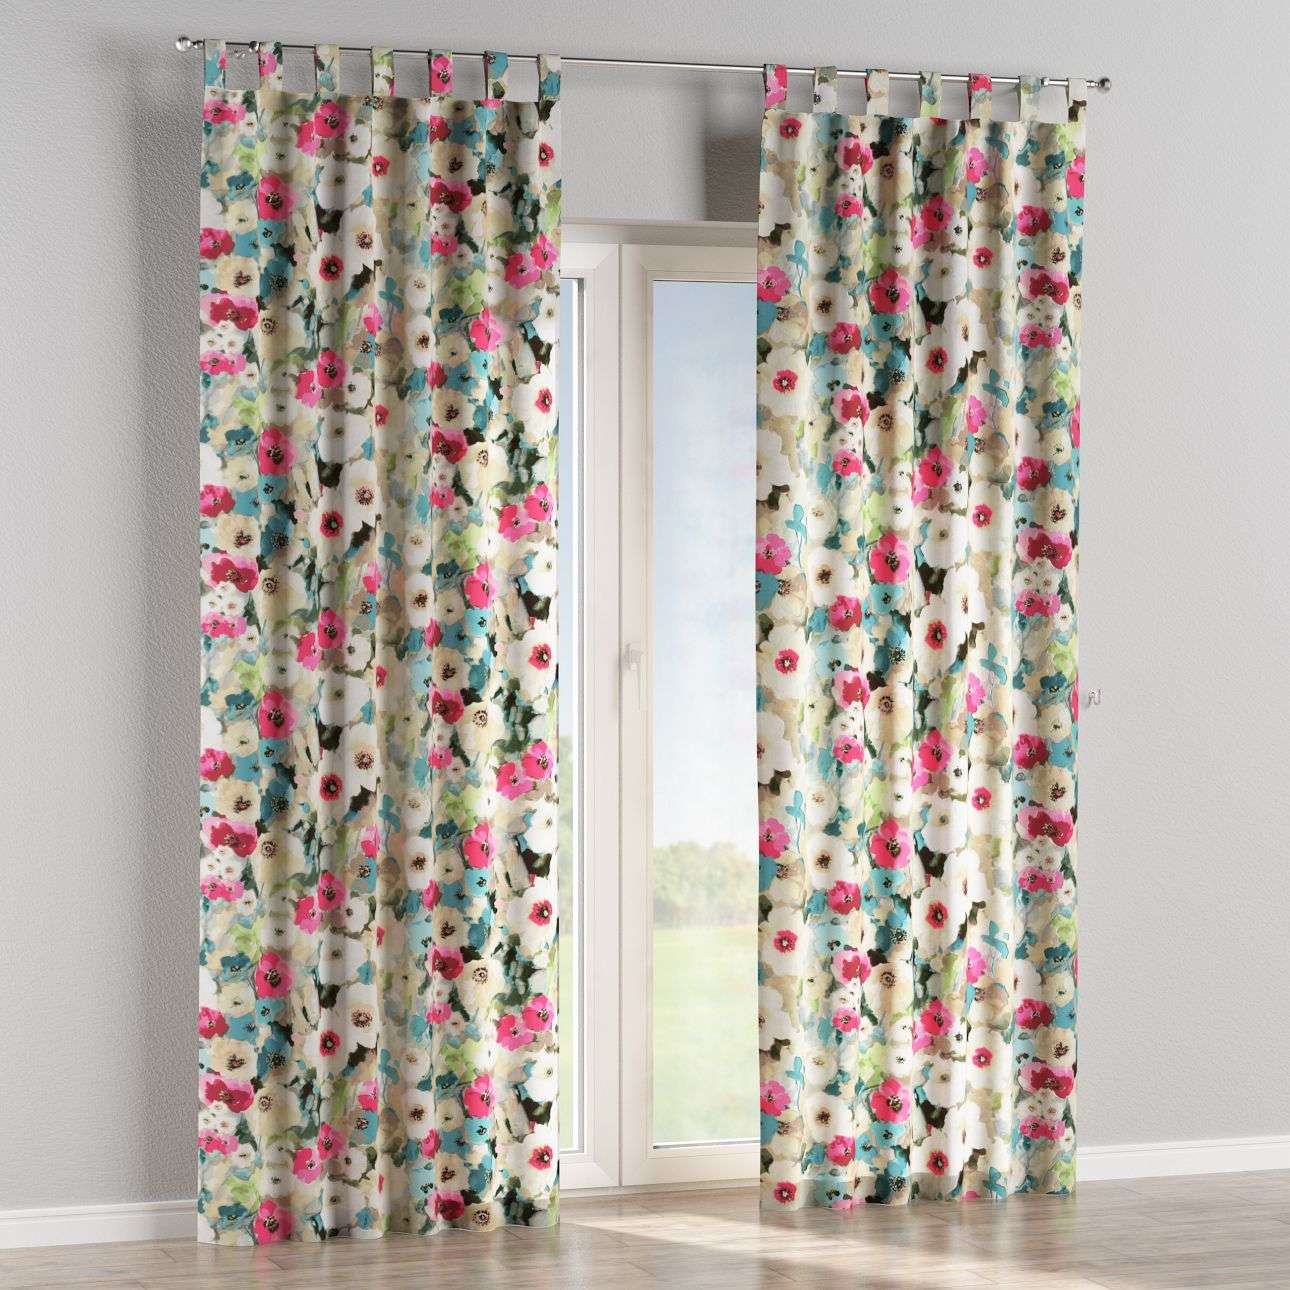 Tab top curtains 130 × 260 cm (51 × 102 inch) in collection Monet, fabric: 140-08